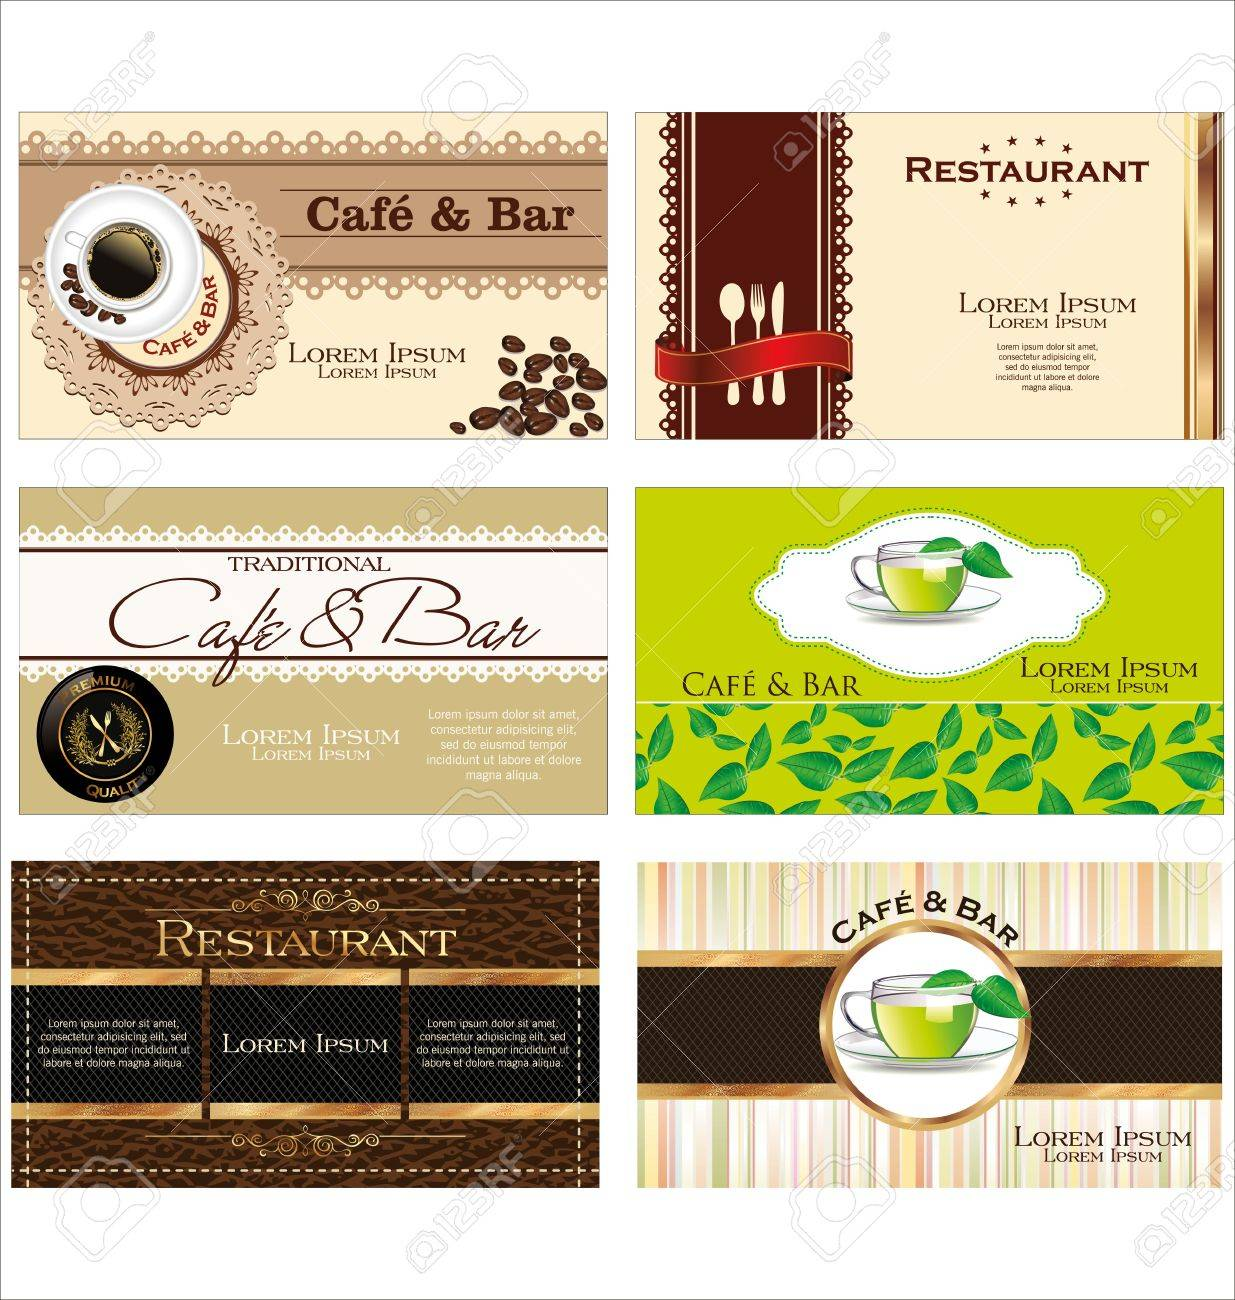 Business cards for cafe and restaurant royalty free cliparts business cards for cafe and restaurant stock vector 19160335 reheart Image collections